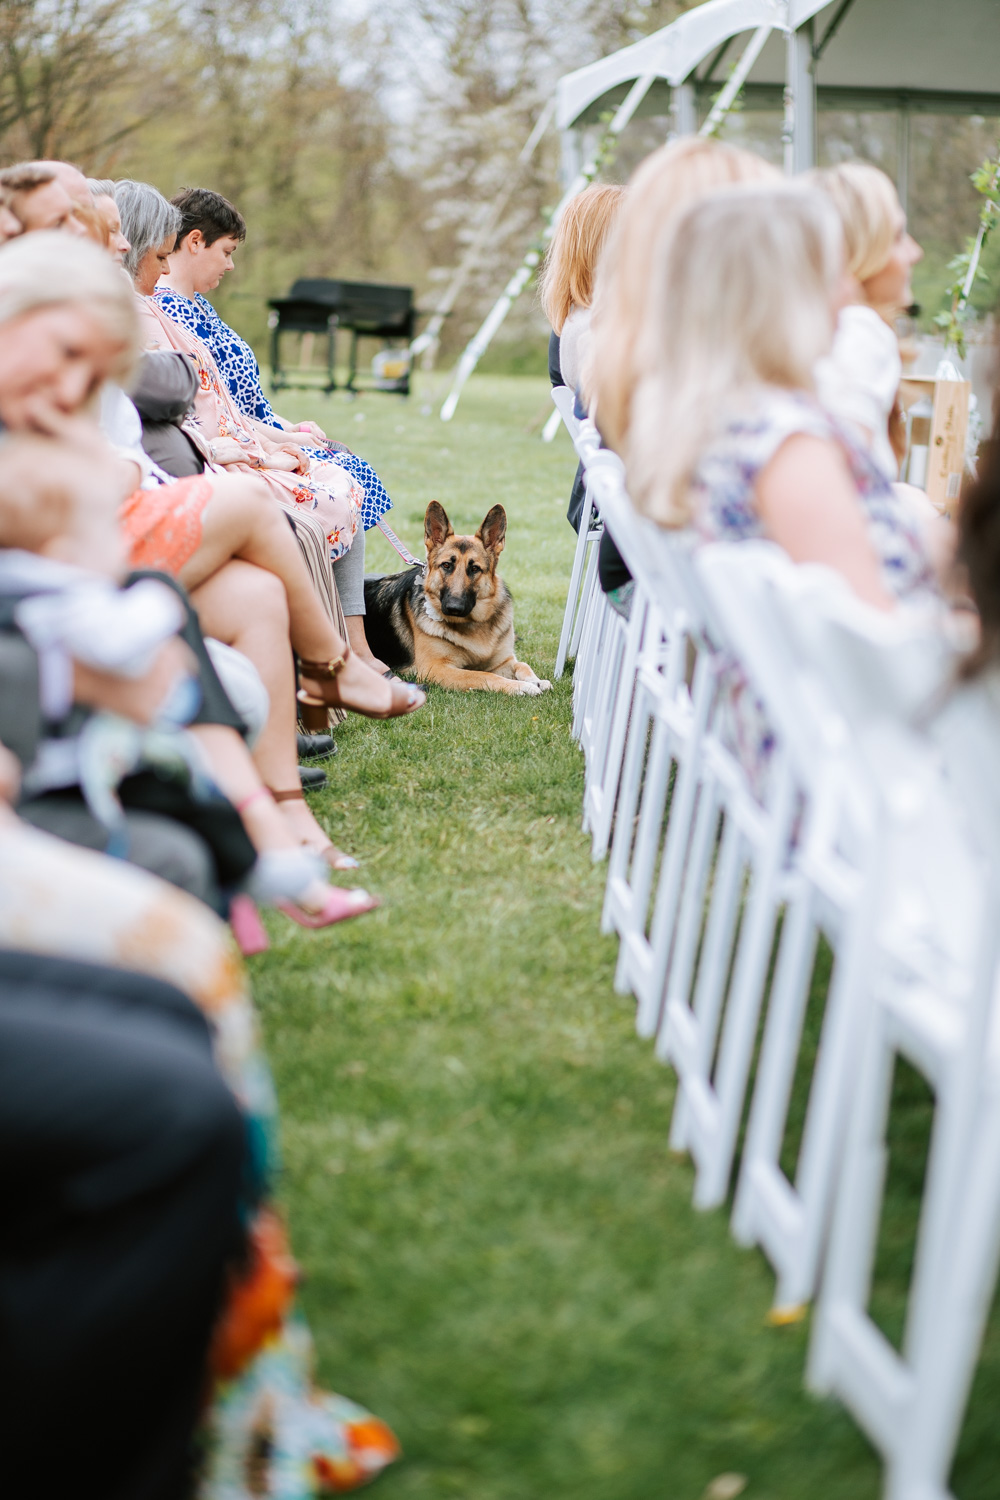 Shutter Up Studios   Wedding photographer in Pittsburgh, Pennsylvania   Outdoor rustic elegant country chic ceremony with German shepherd dog